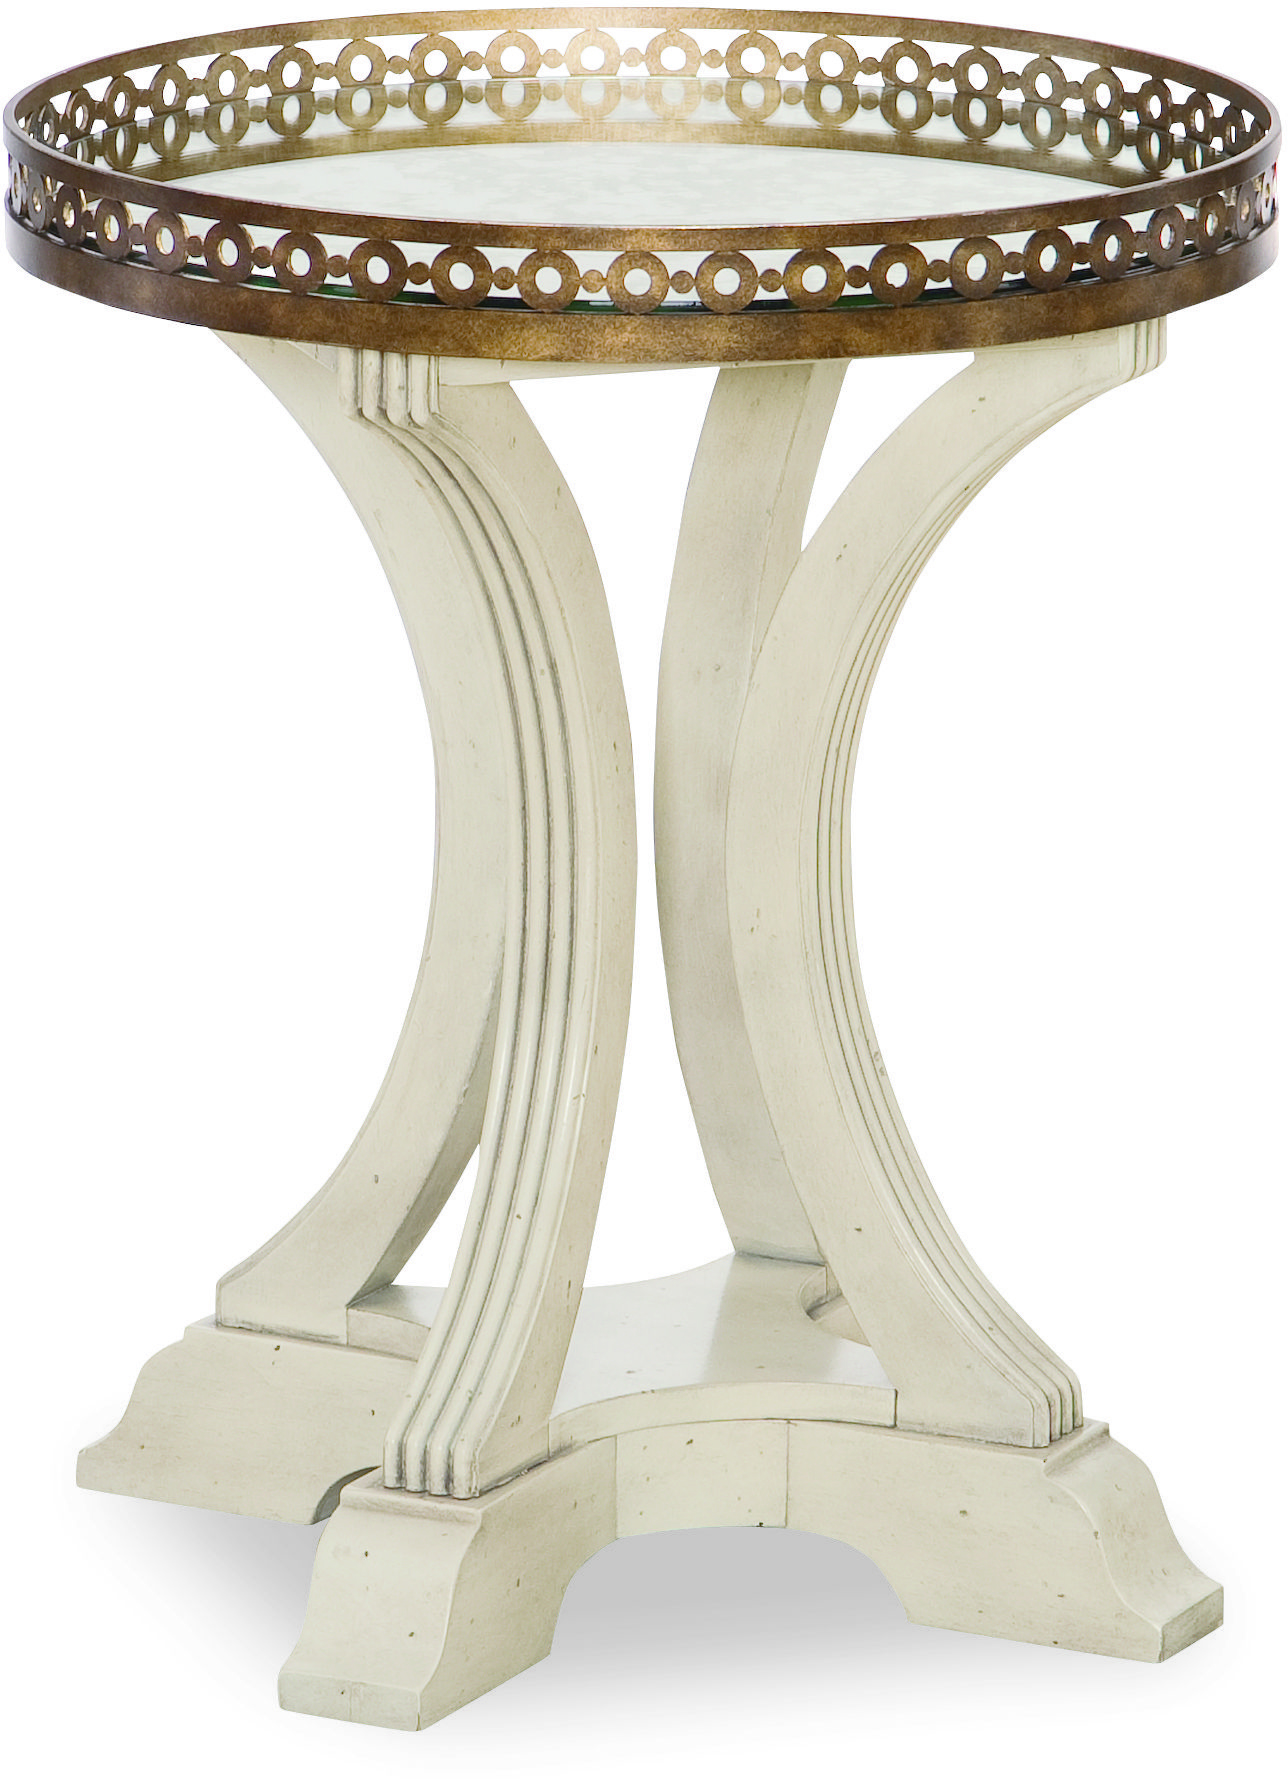 Legacy Classic Renaissance Gallery Round End Table  - Item Number: 5500-805